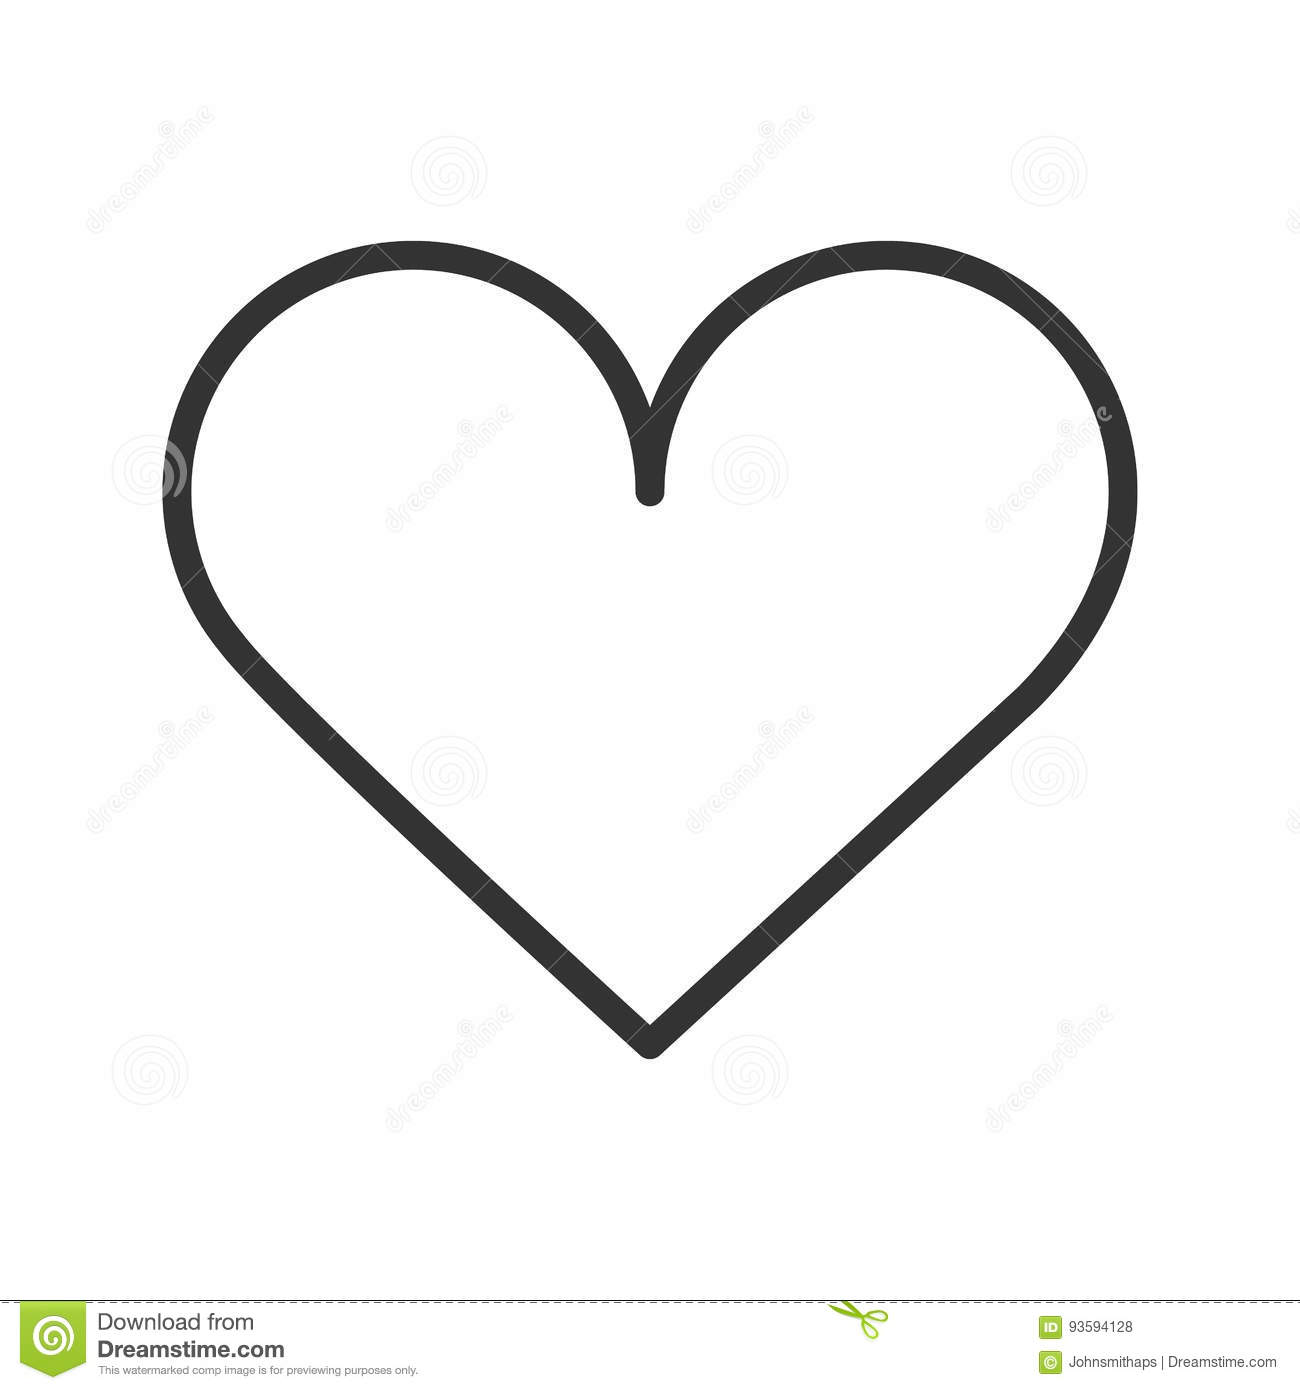 Line Art Heart Outline : Heart linear icon thin line illustration vector isolated